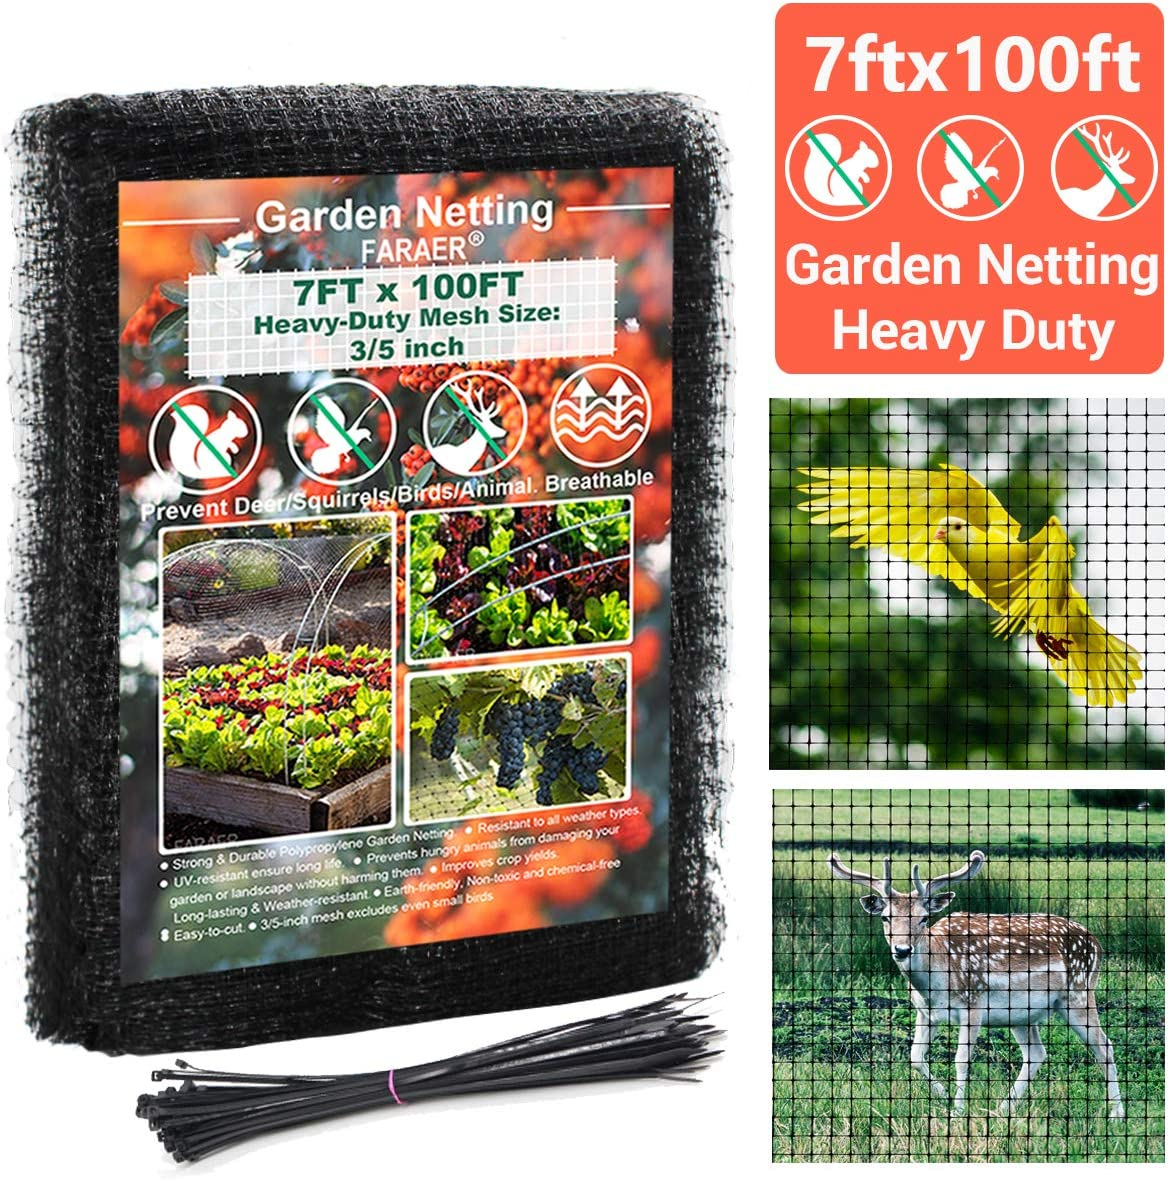 FARAER Garden Bird Netting, Heavy Duty 7x100 Feet Deer Fence Netting Crop Protection Net Reusable Barrier Netting Plant Covers for Protect Plants and Fruit Trees Vegetables from Birds Deer Animals